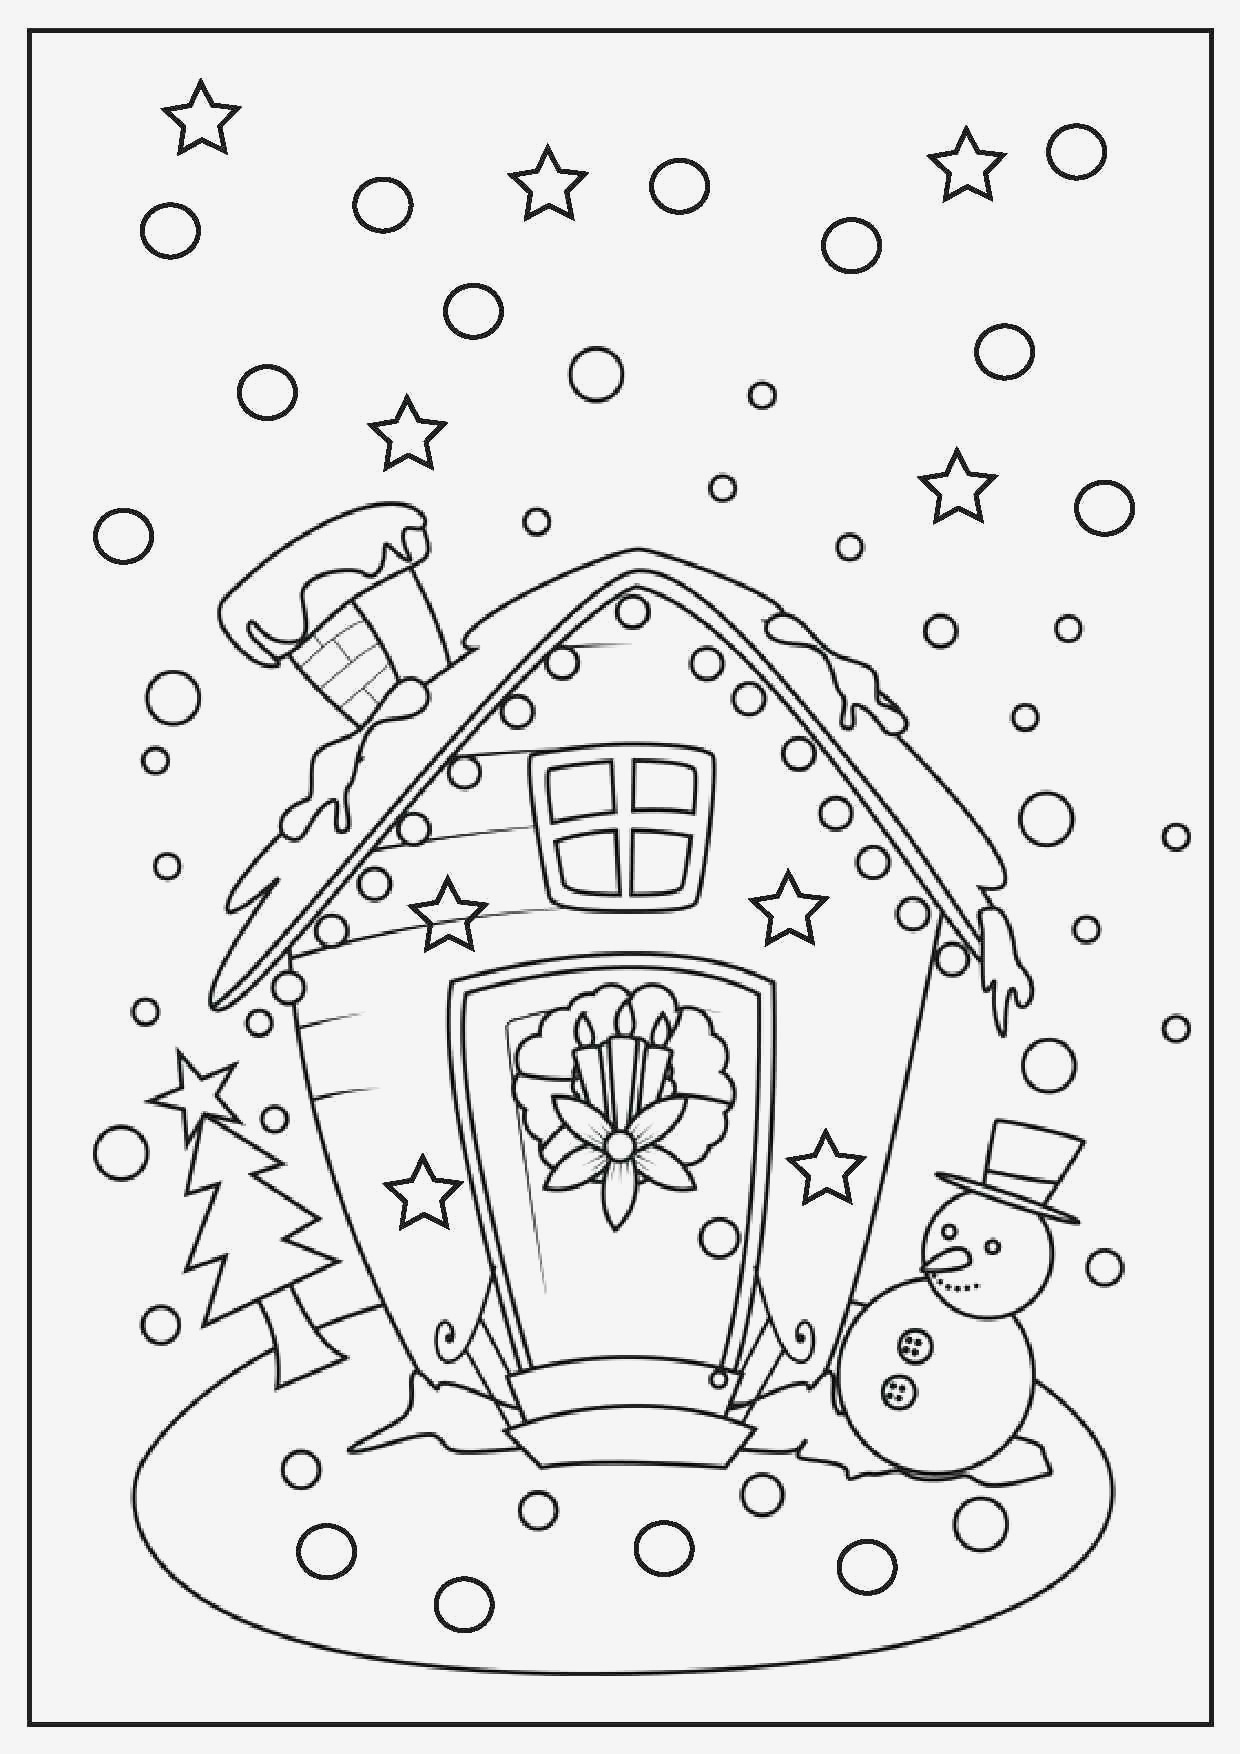 School Coloring Pages First Day Of Preschool Coloring Pages New 24 First Day School